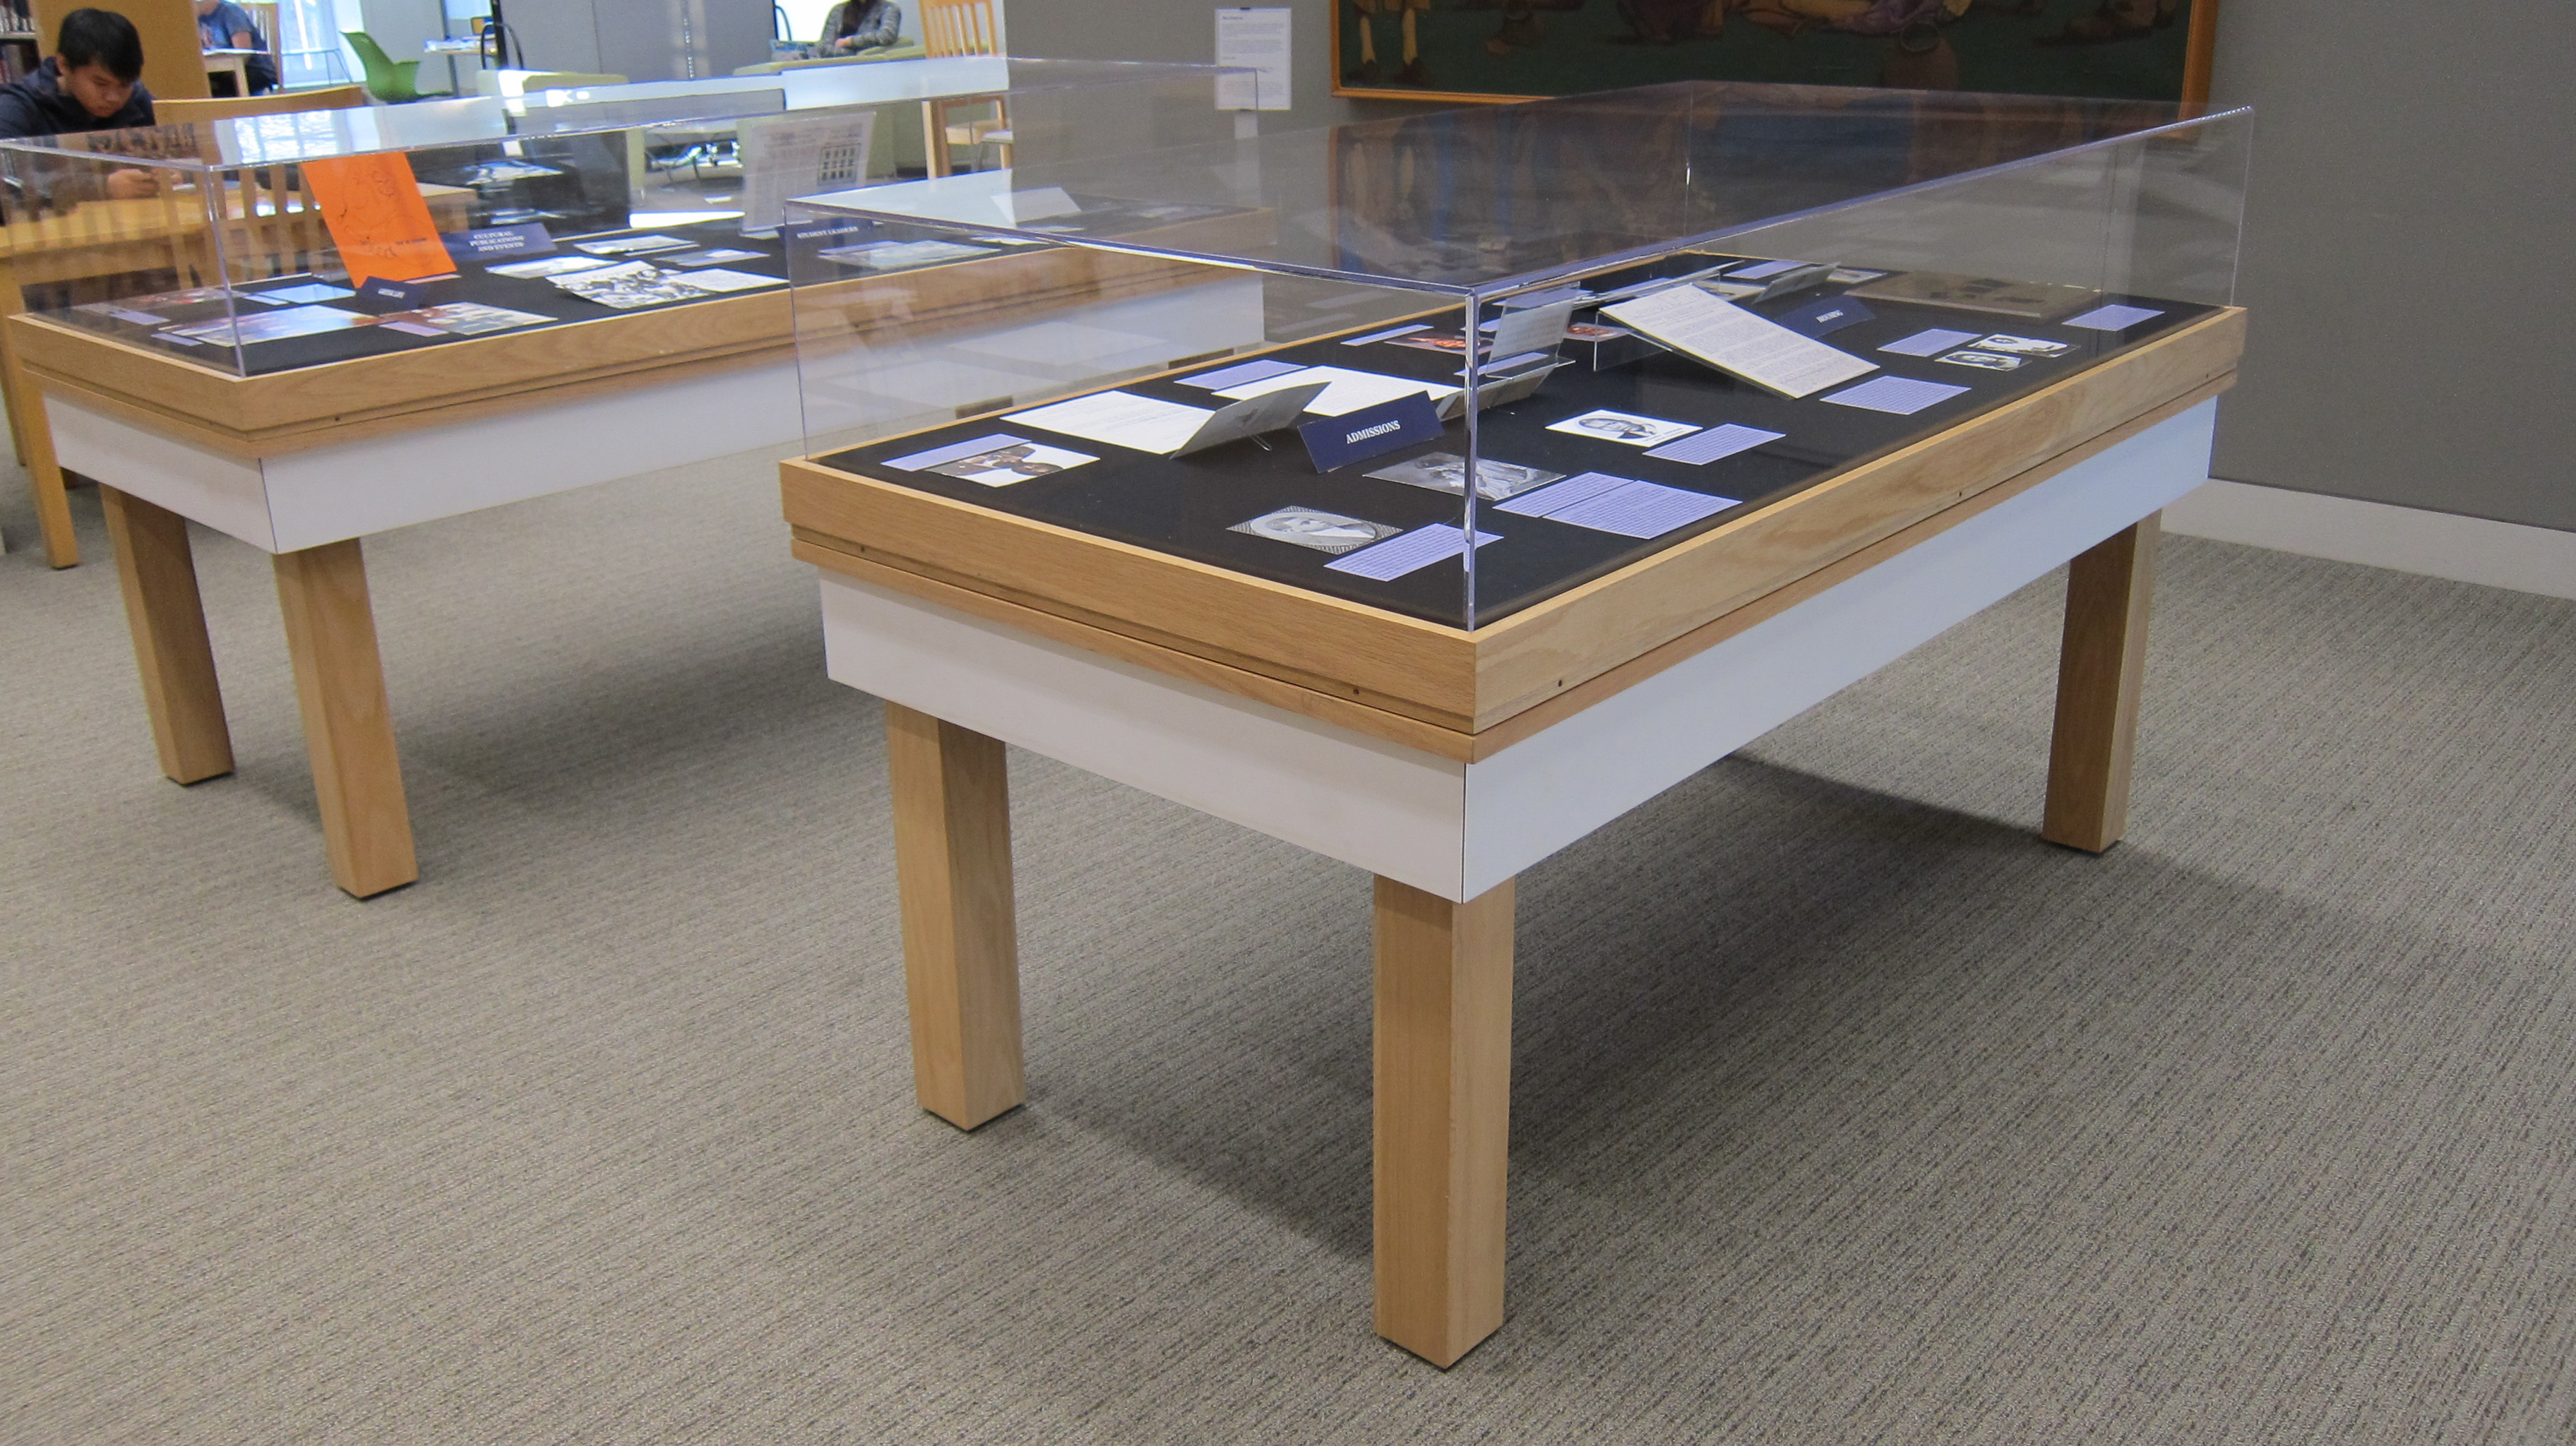 Picture of exhibit cases of By the People for the People